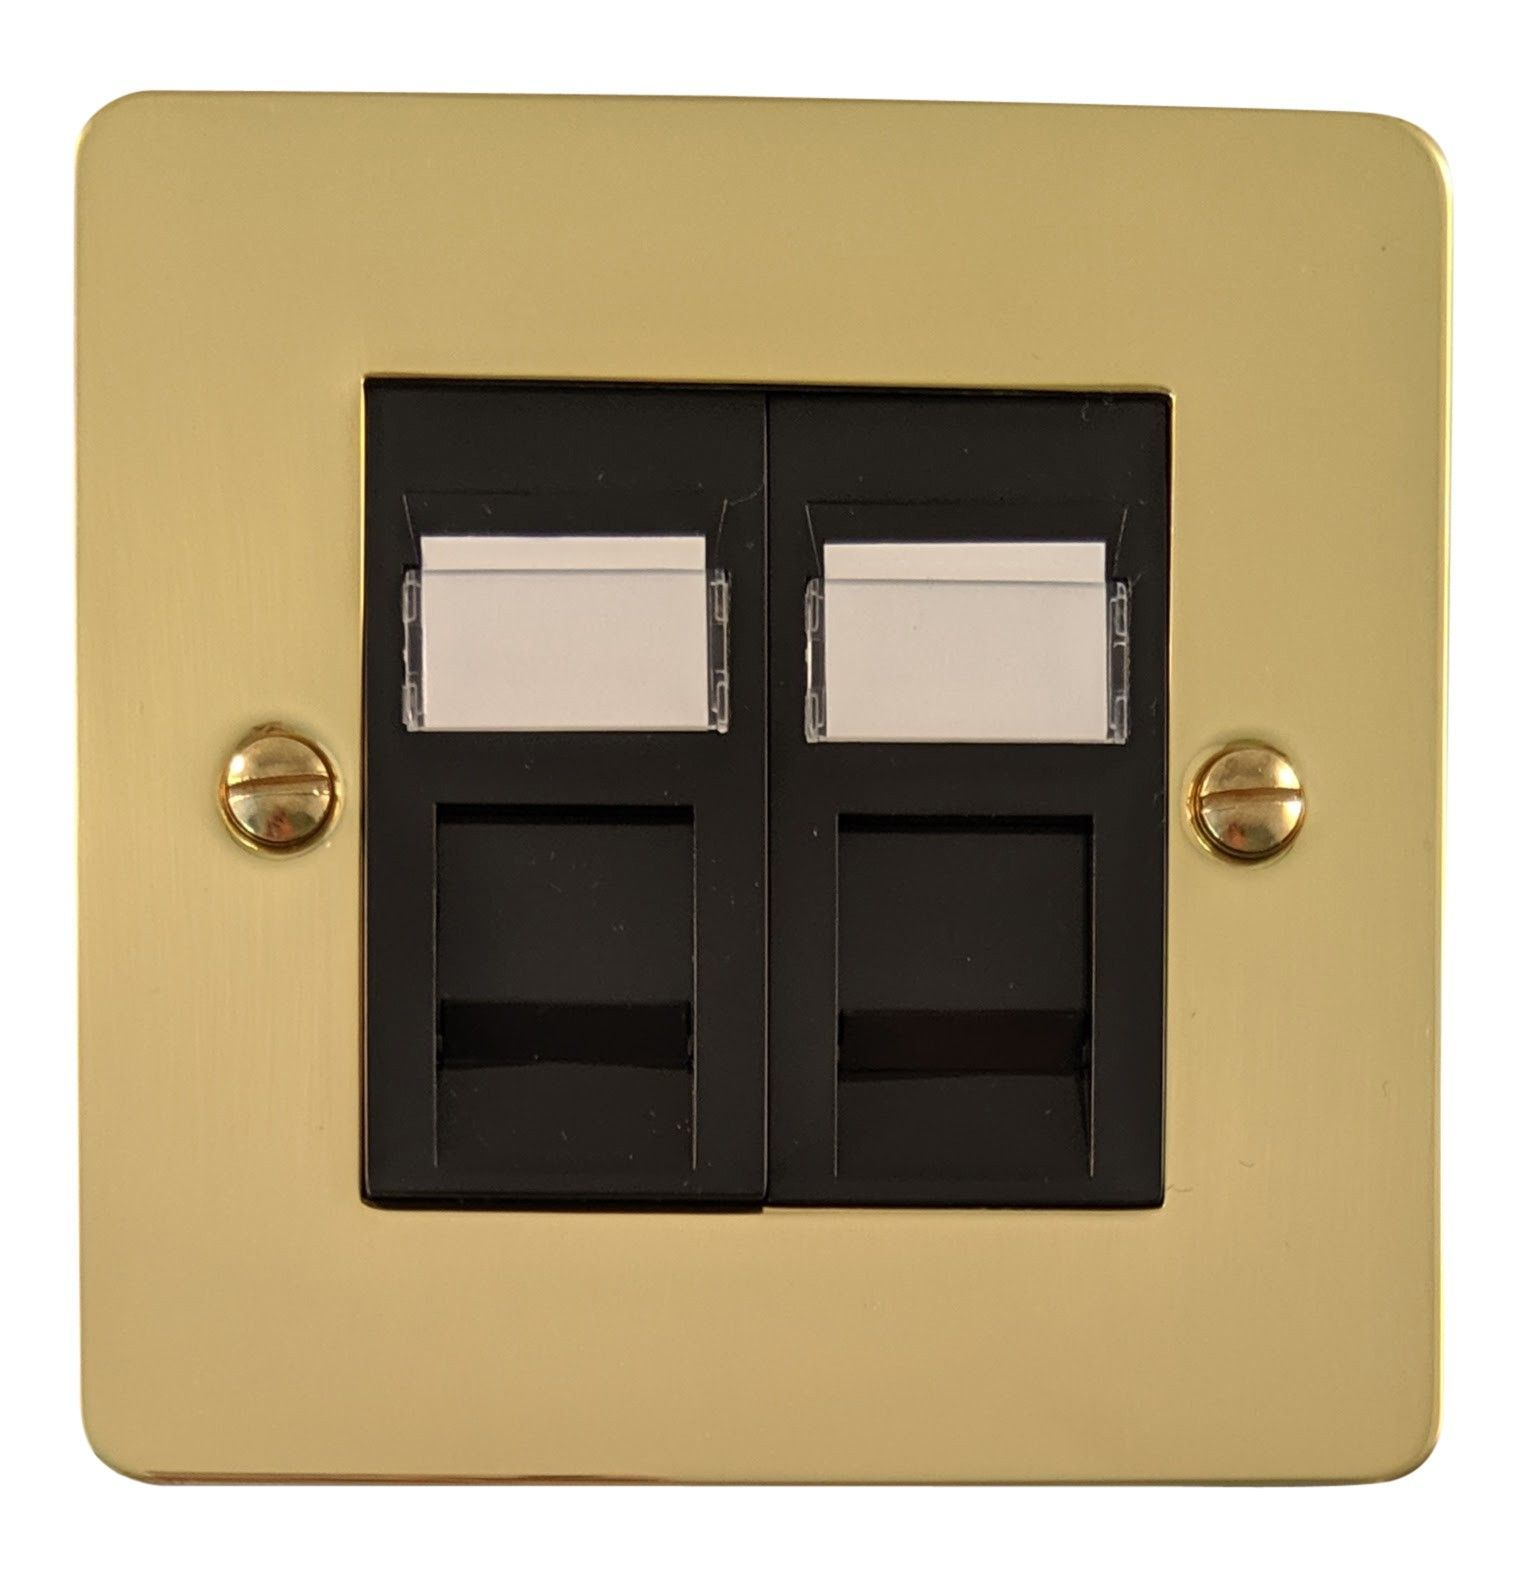 G&H FB63B Flat Plate Polished Brass 2 Gang Master BT Telephone Socket